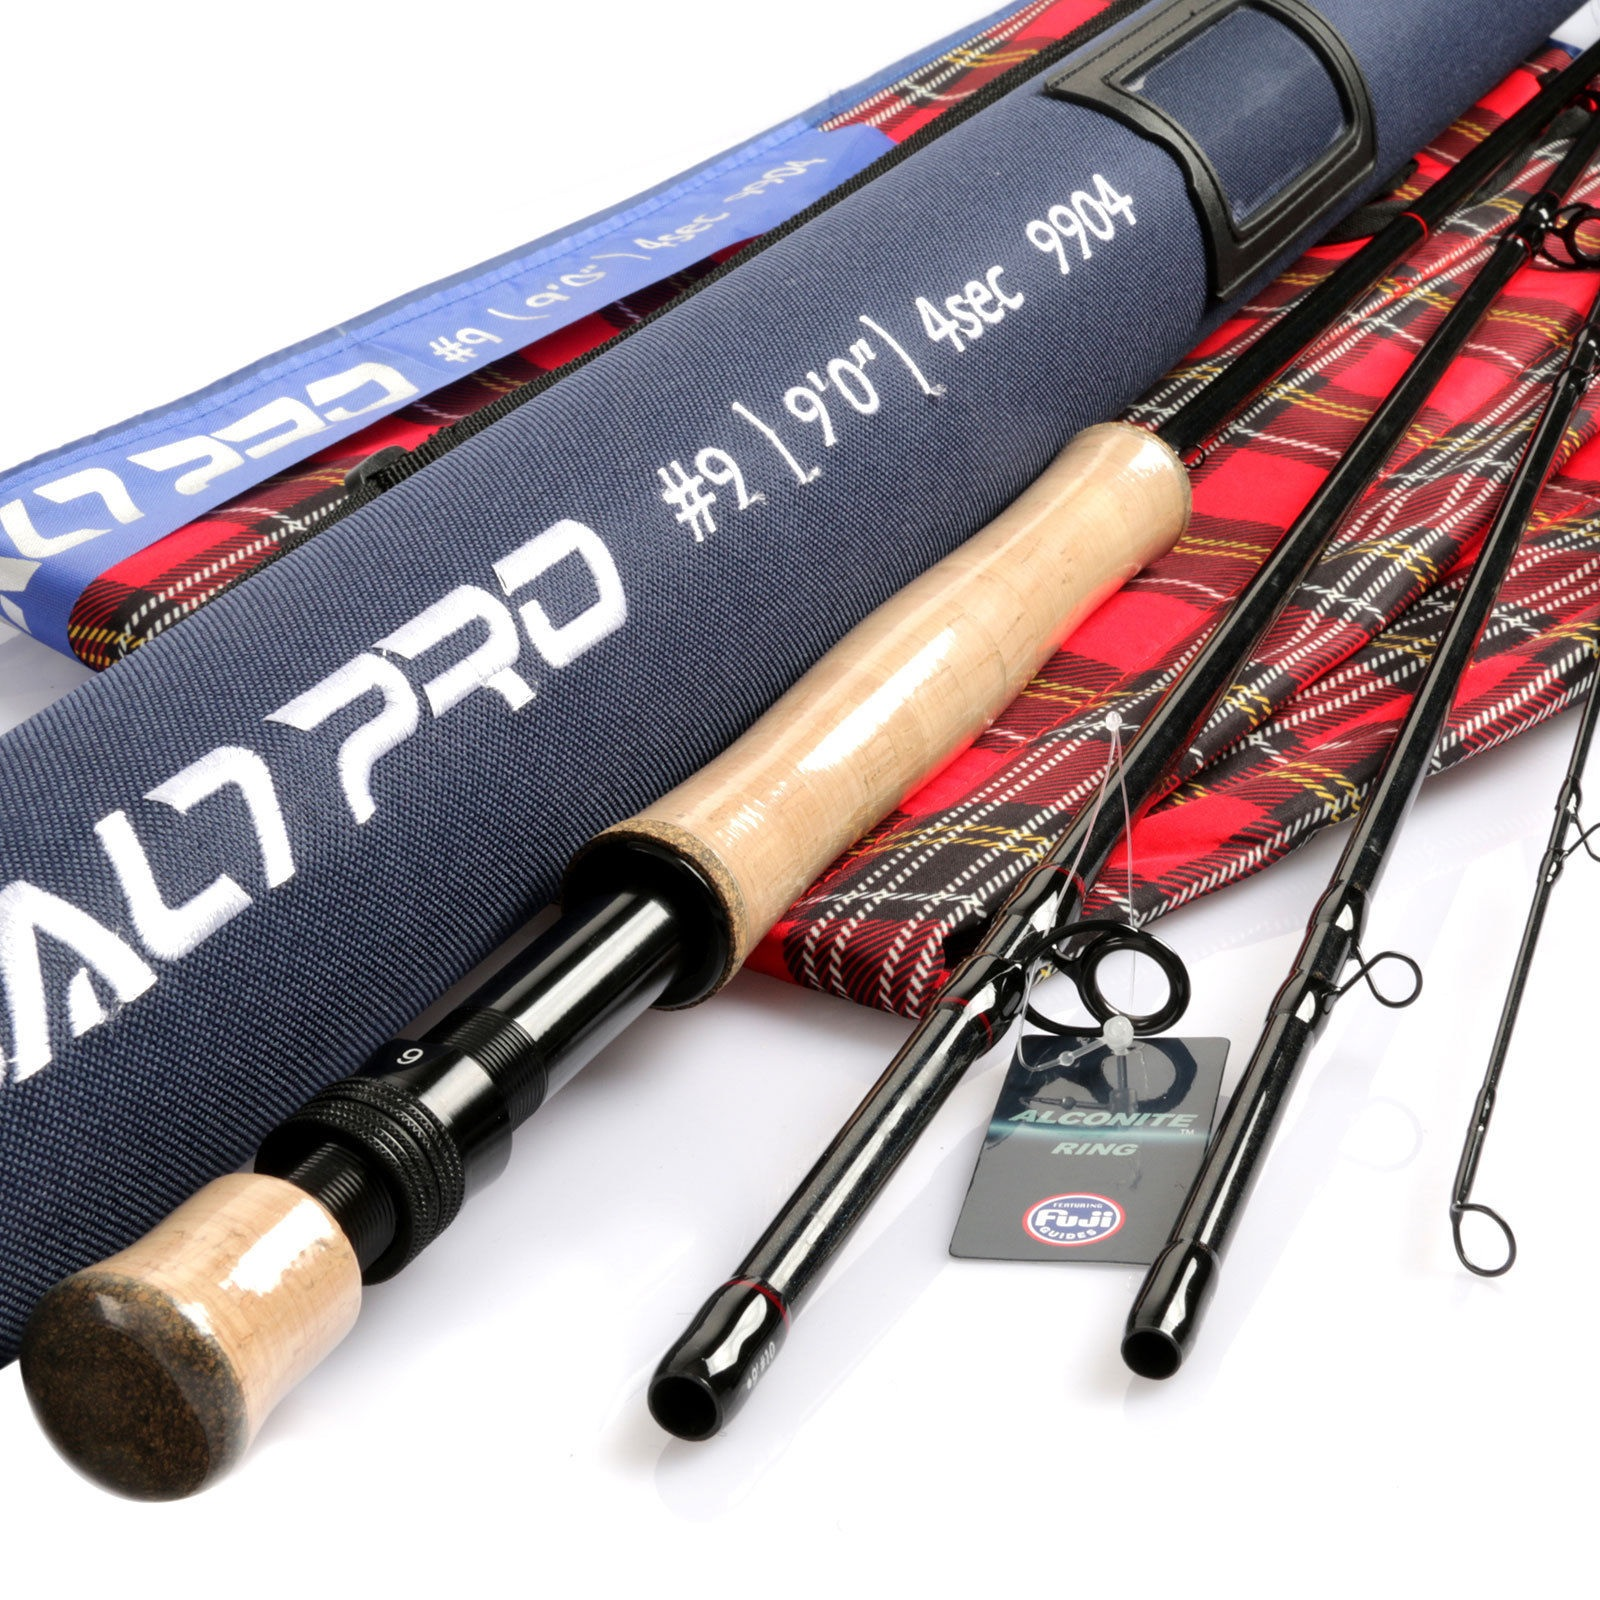 Saltwater Rod 8/9/10wt 9ft Graphite IM10 Fast Action Fly Fishing & Tube